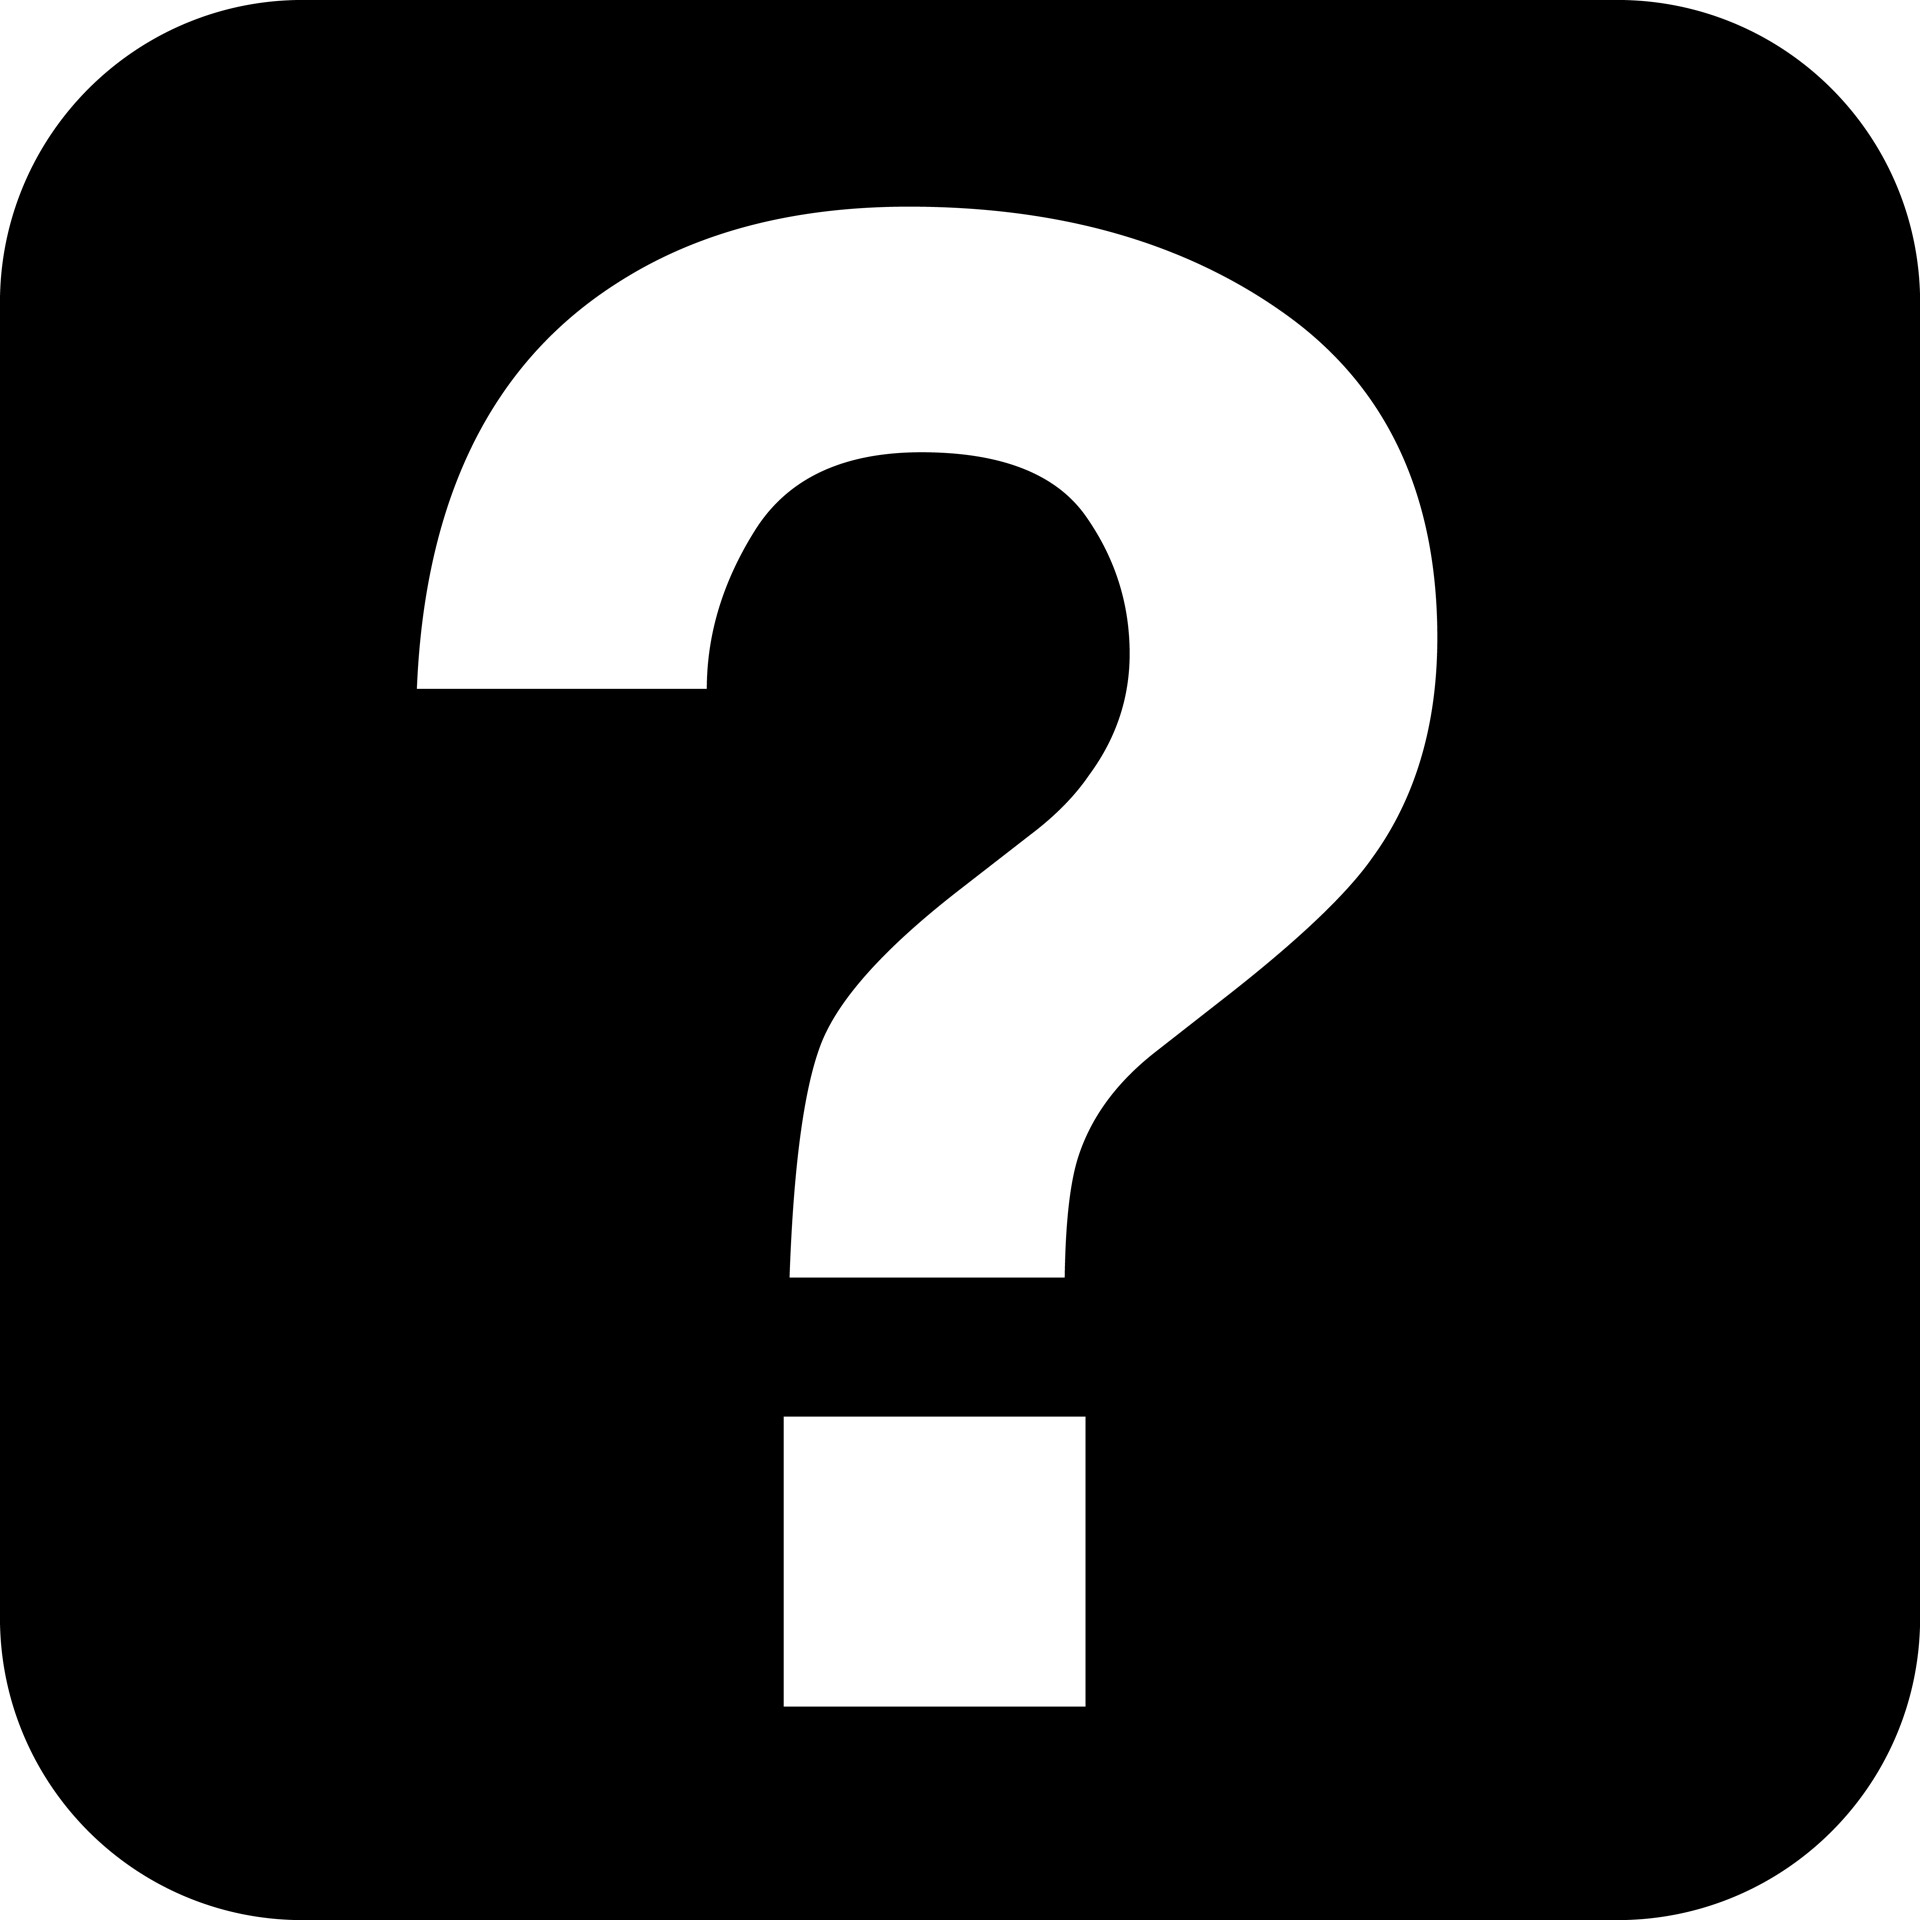 1920x1920 Question Mark Free Stock Photo